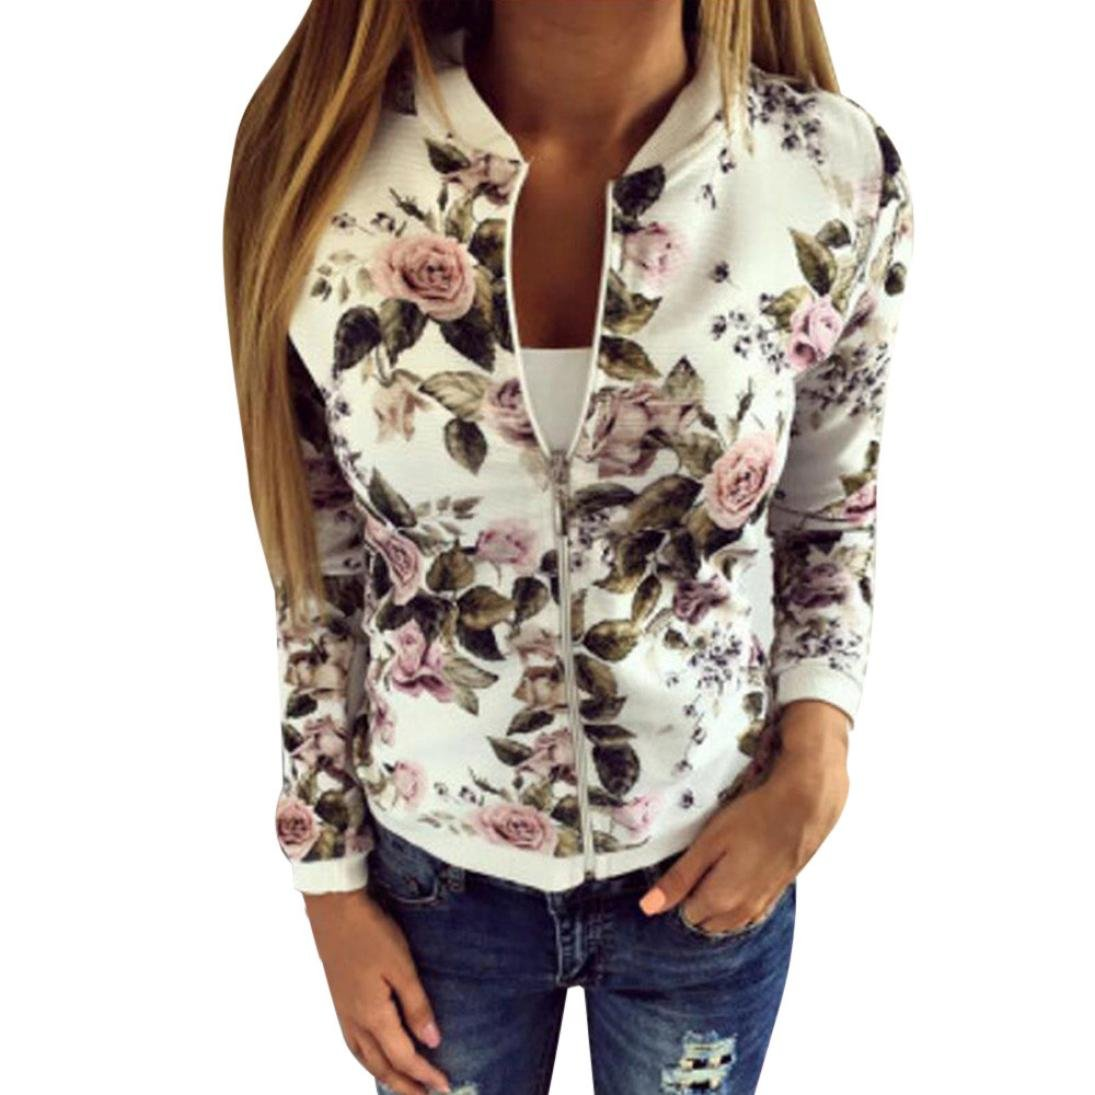 Gillberry Women Stand Collar Long Sleeve Zipper Floral Printed Bomber Jacket (White, M) by Gillberry Women's Jacket